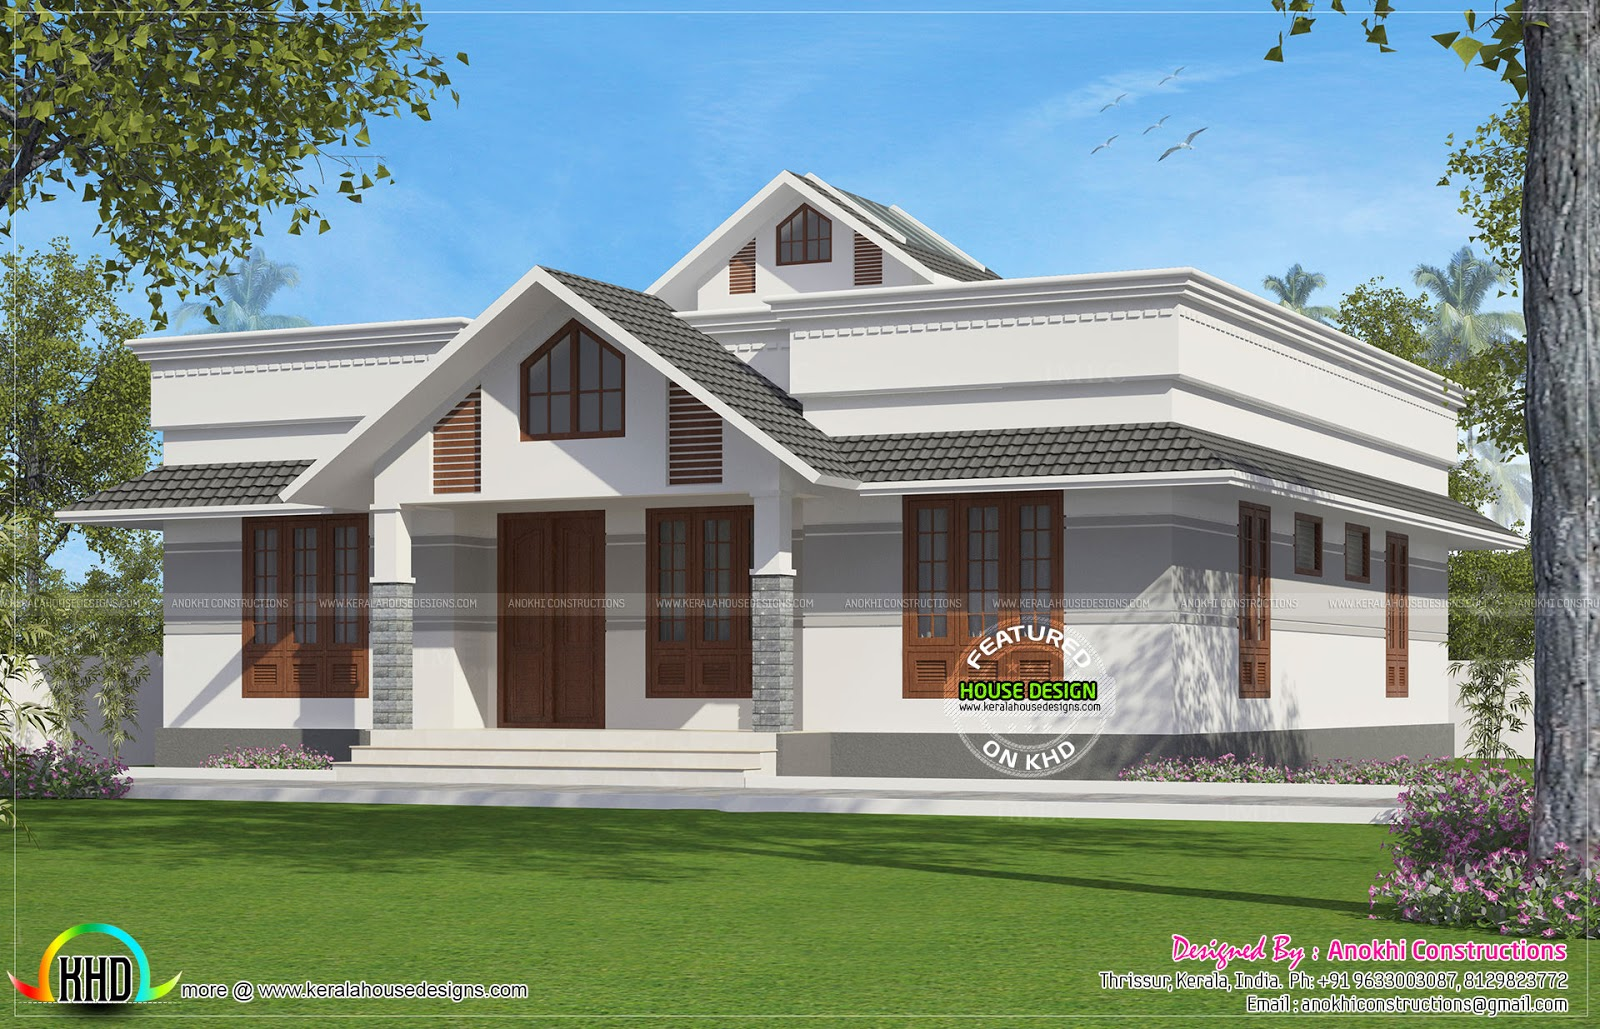 1330 square feet small house plan kerala home design and for Square home plans